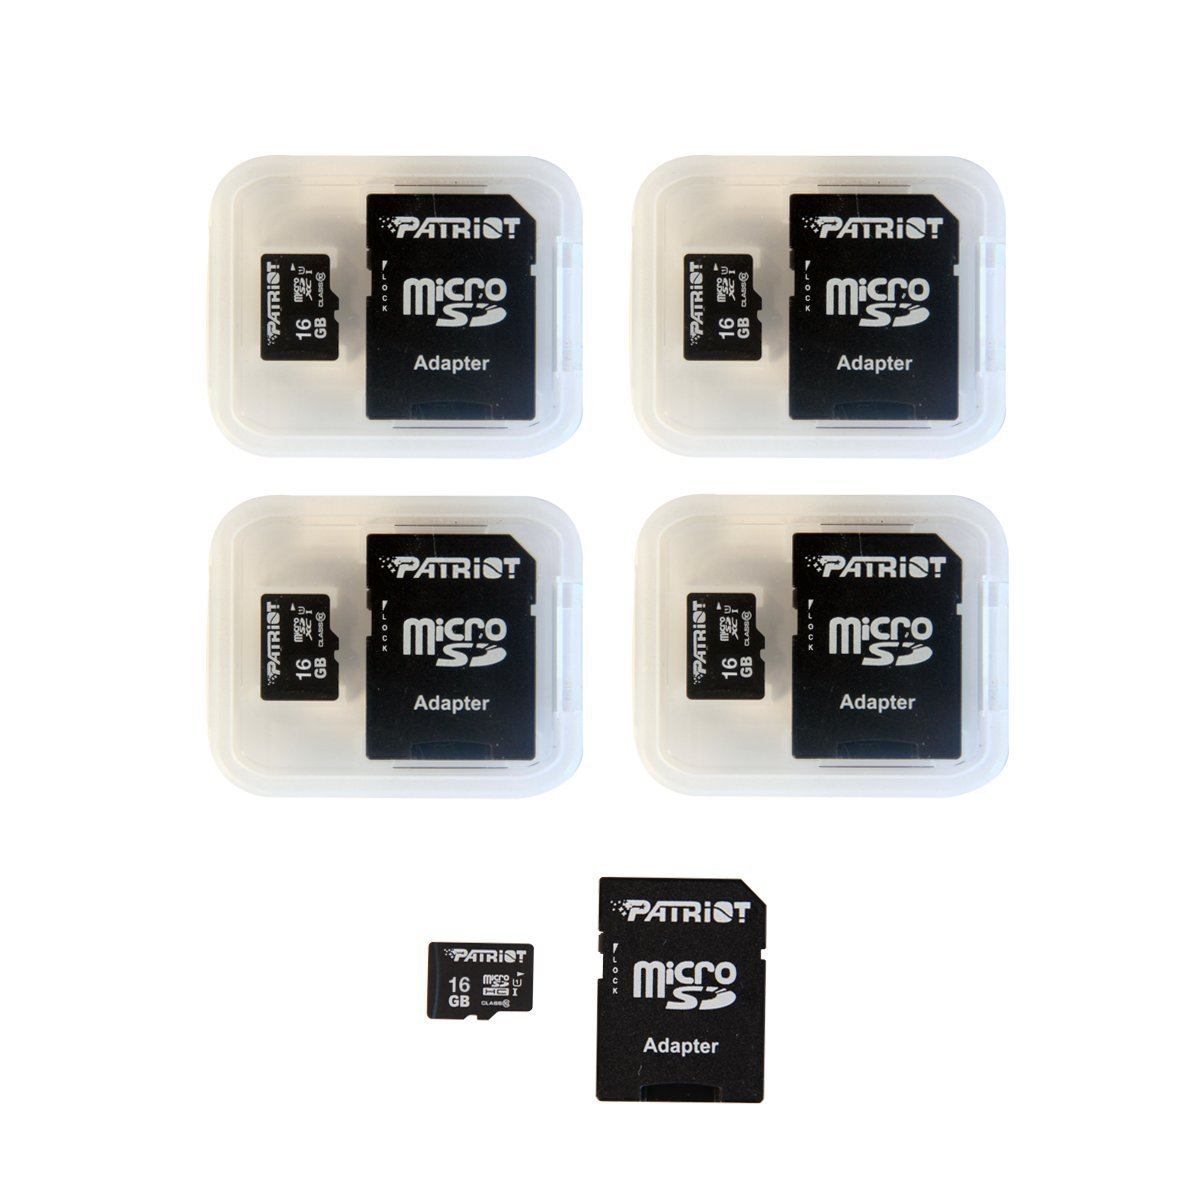 TALLA 16GB 5-Pack. Patriot LX Series 16Gb Micro Sdhc - Class 10 Uhs-I - 5 Pack (Psf16Gmcsdhc5Pk)